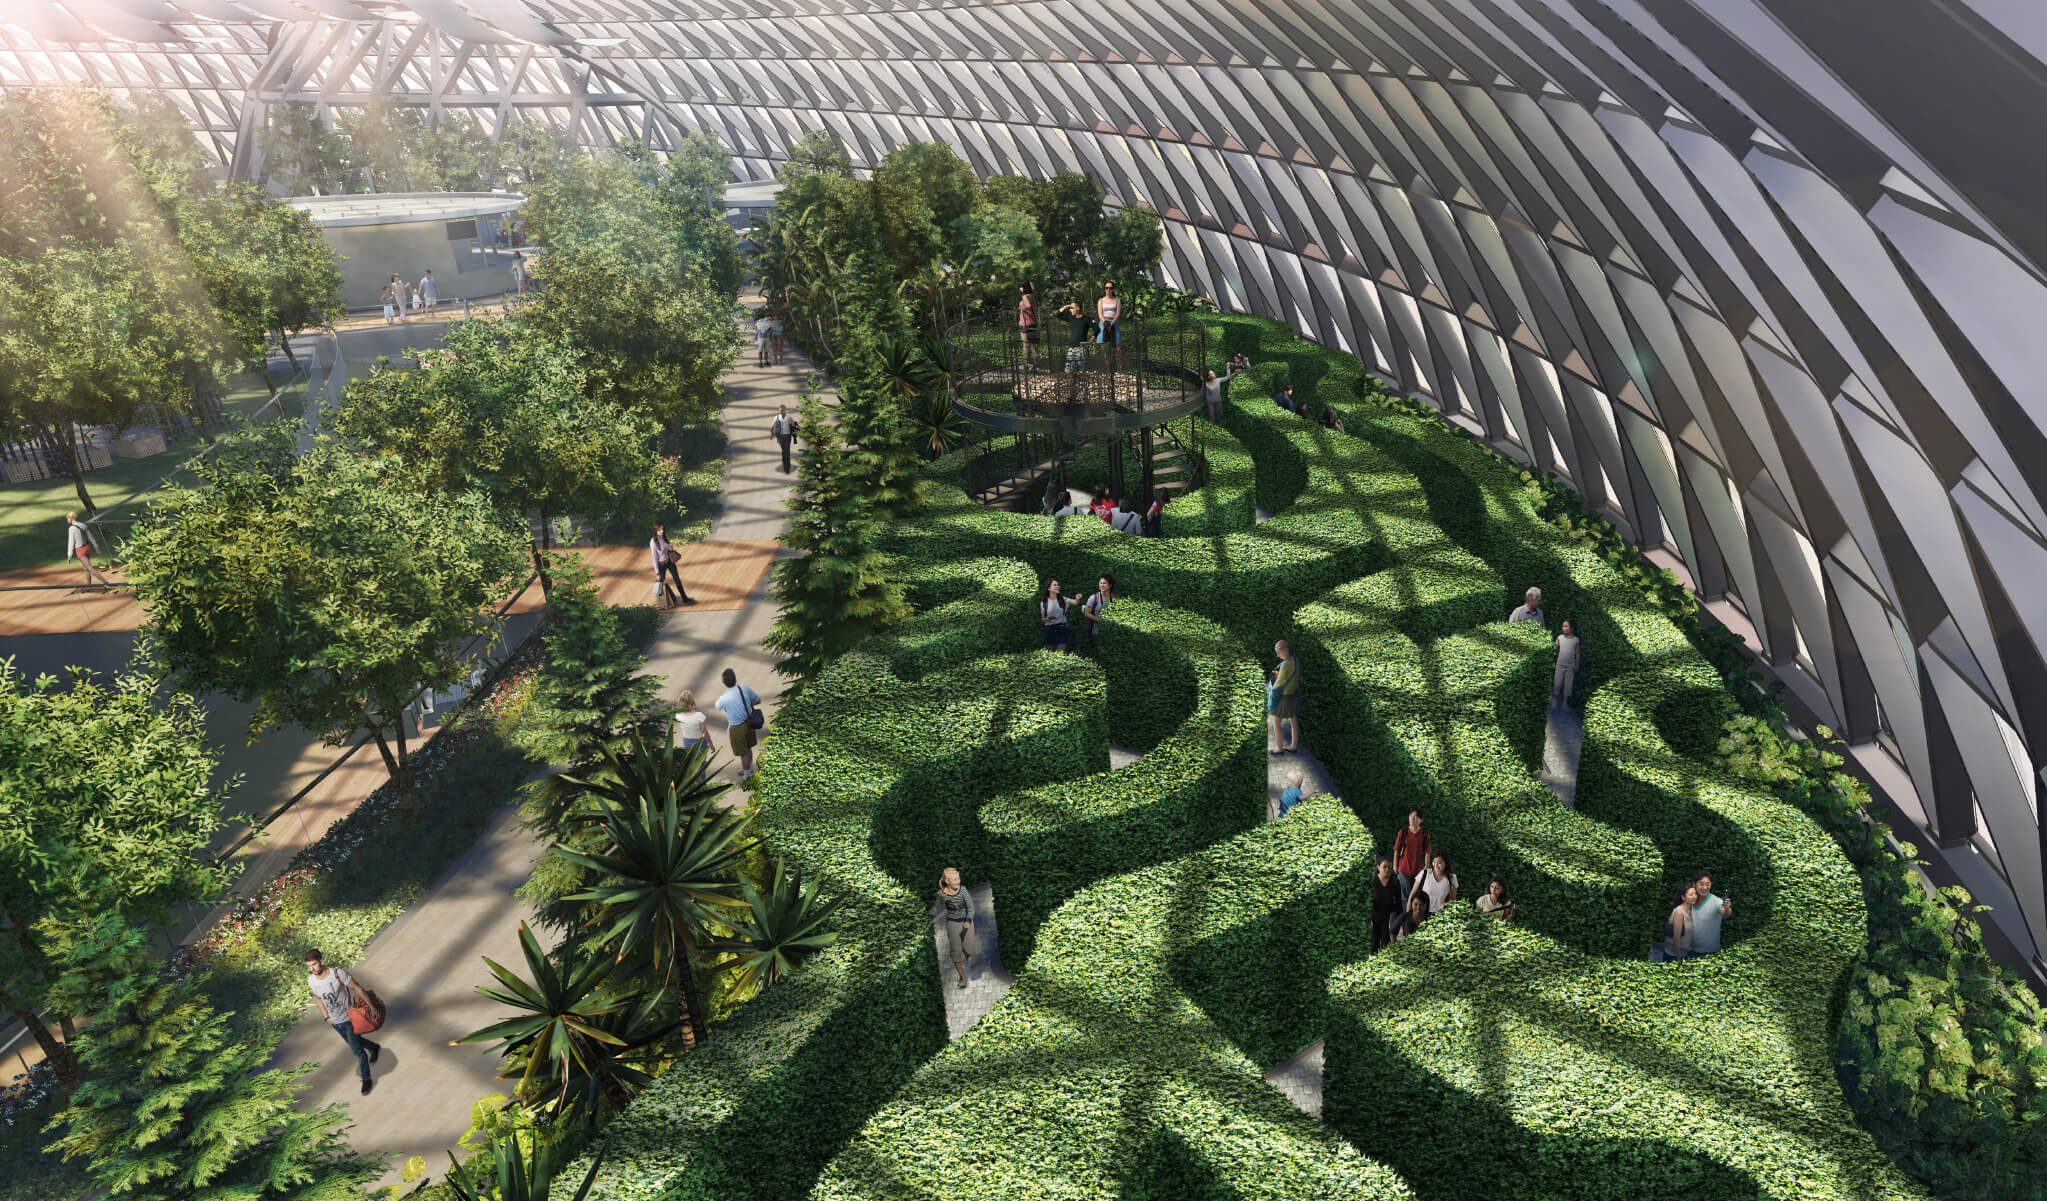 The Maze at Changi Airport via Straits Times